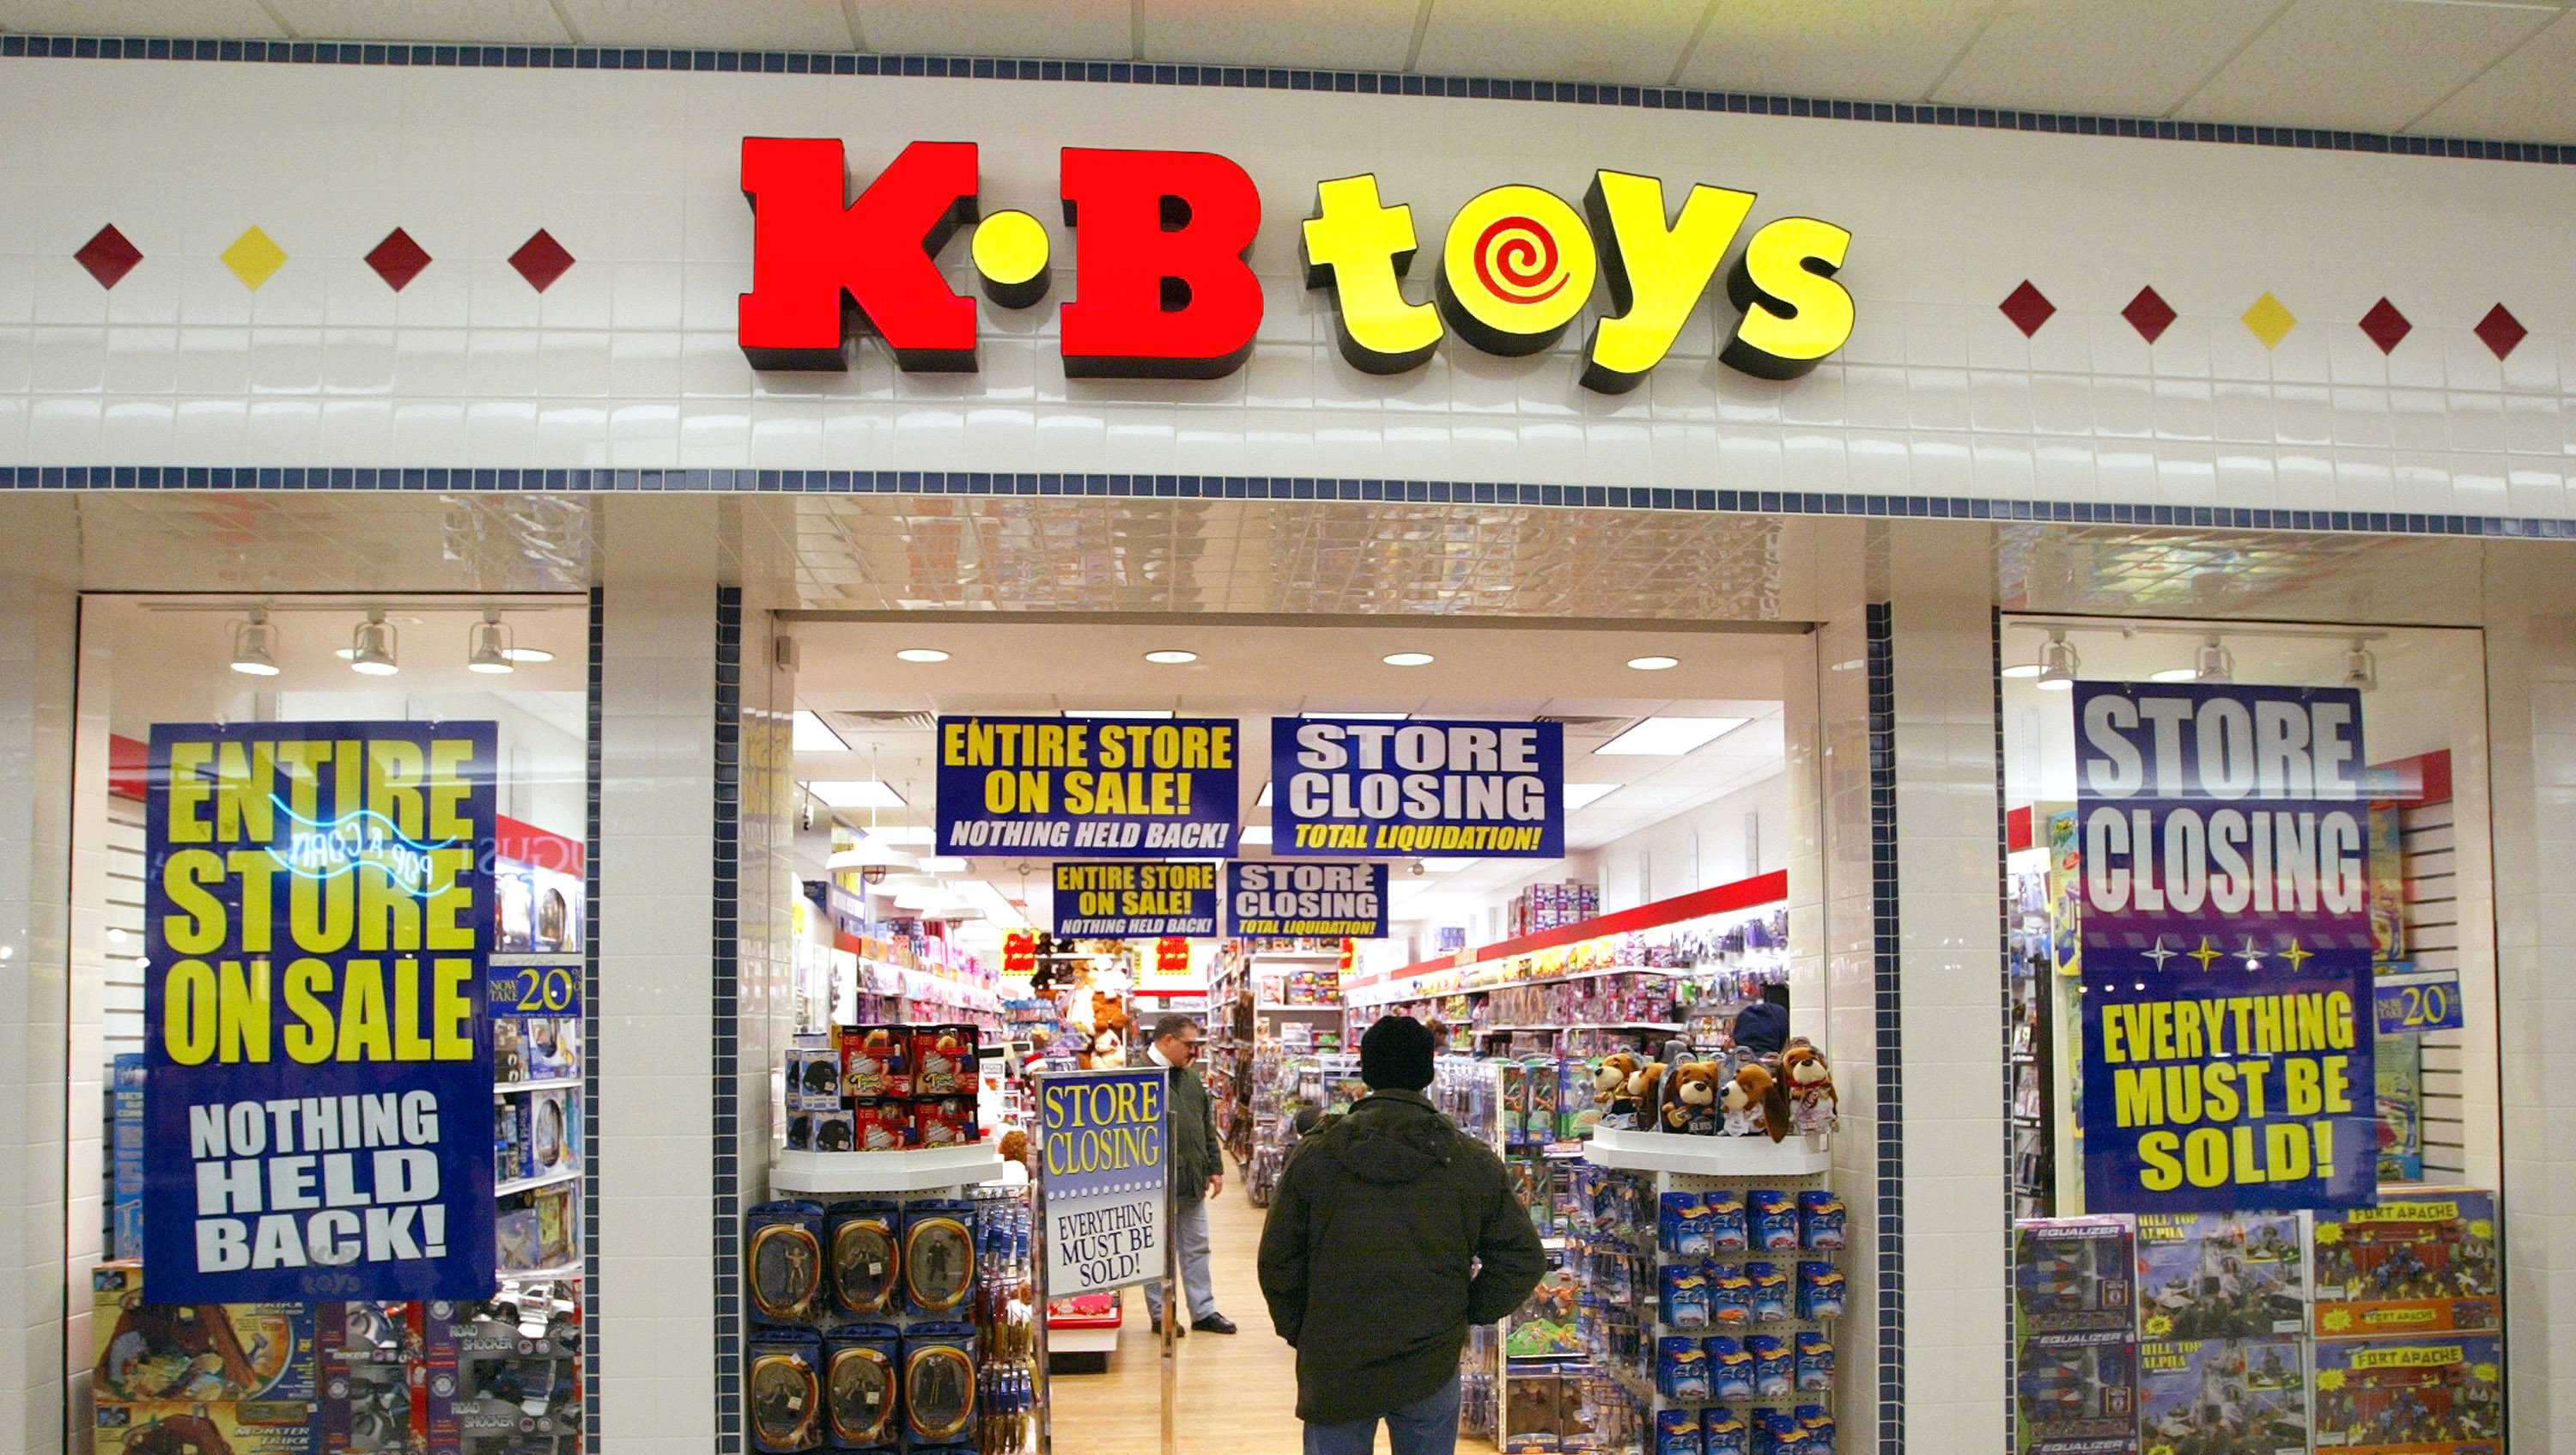 A shopper enters a closing KB Toys store January 30, 2004 in Norridge, Illinois.